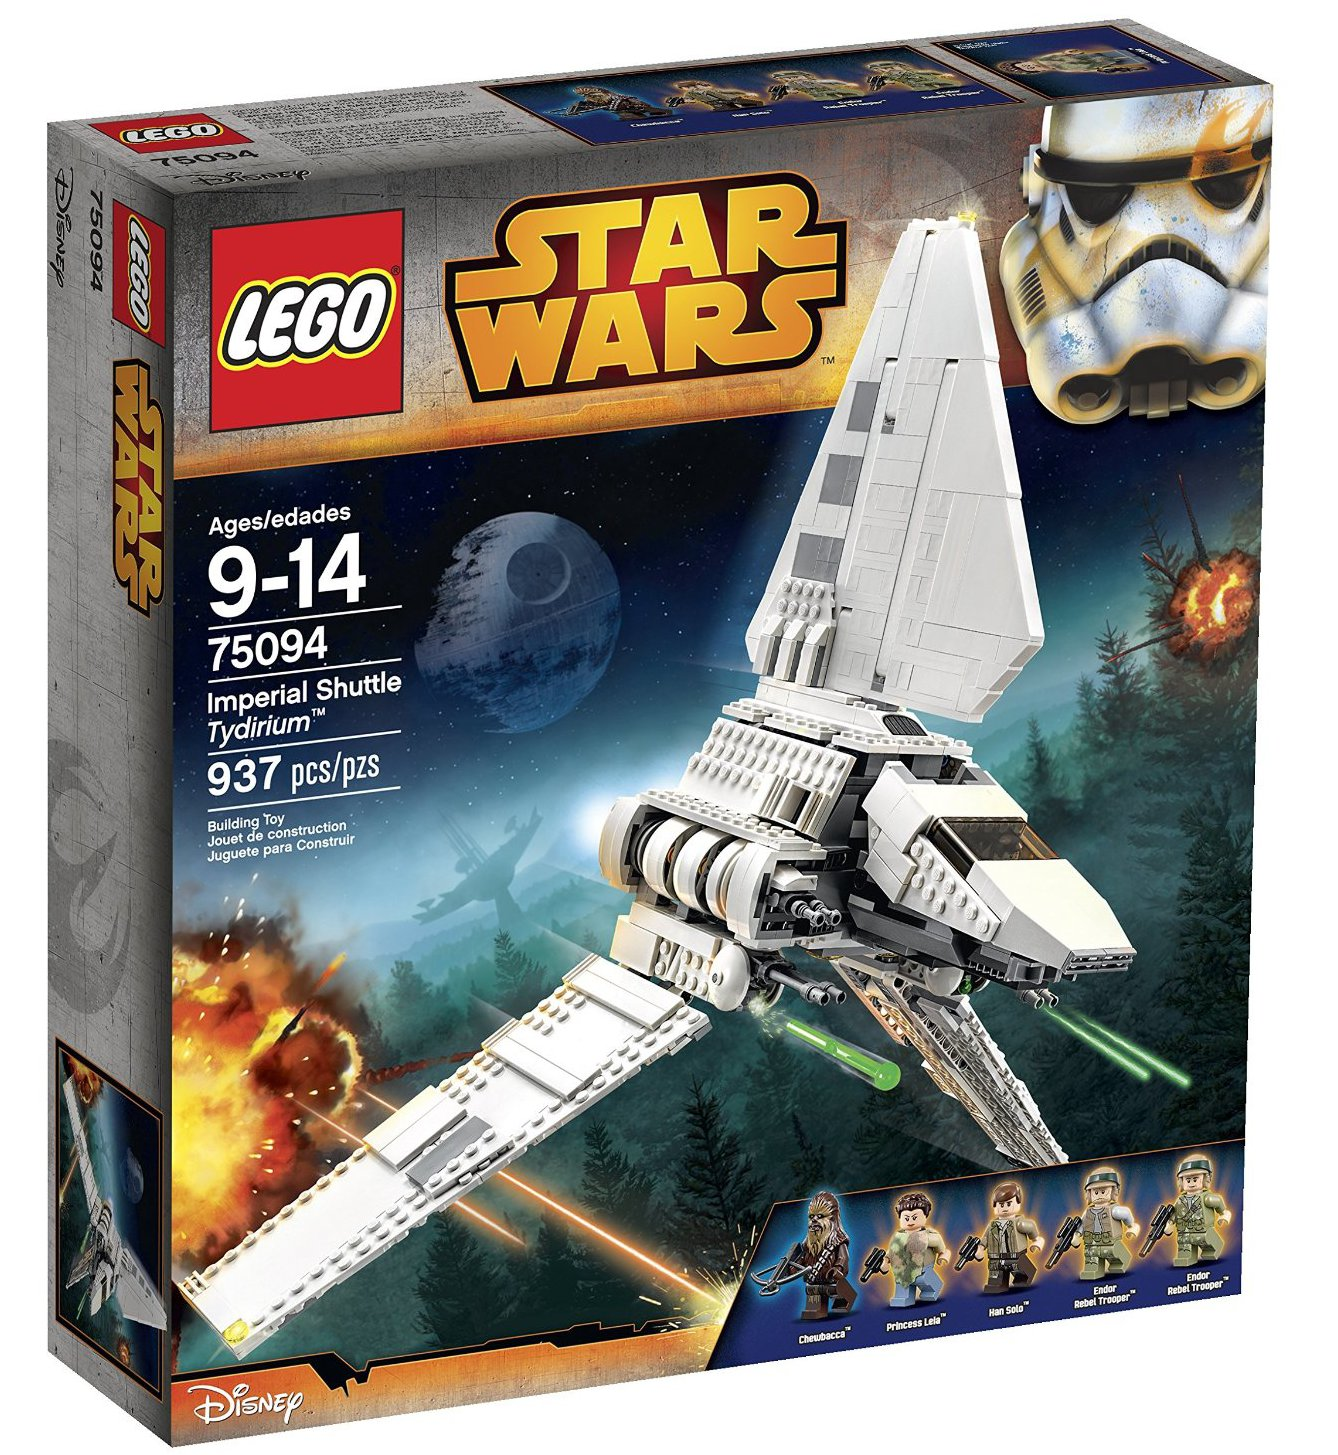 Lego Star Wars Summer 2015 Sets Available For Order